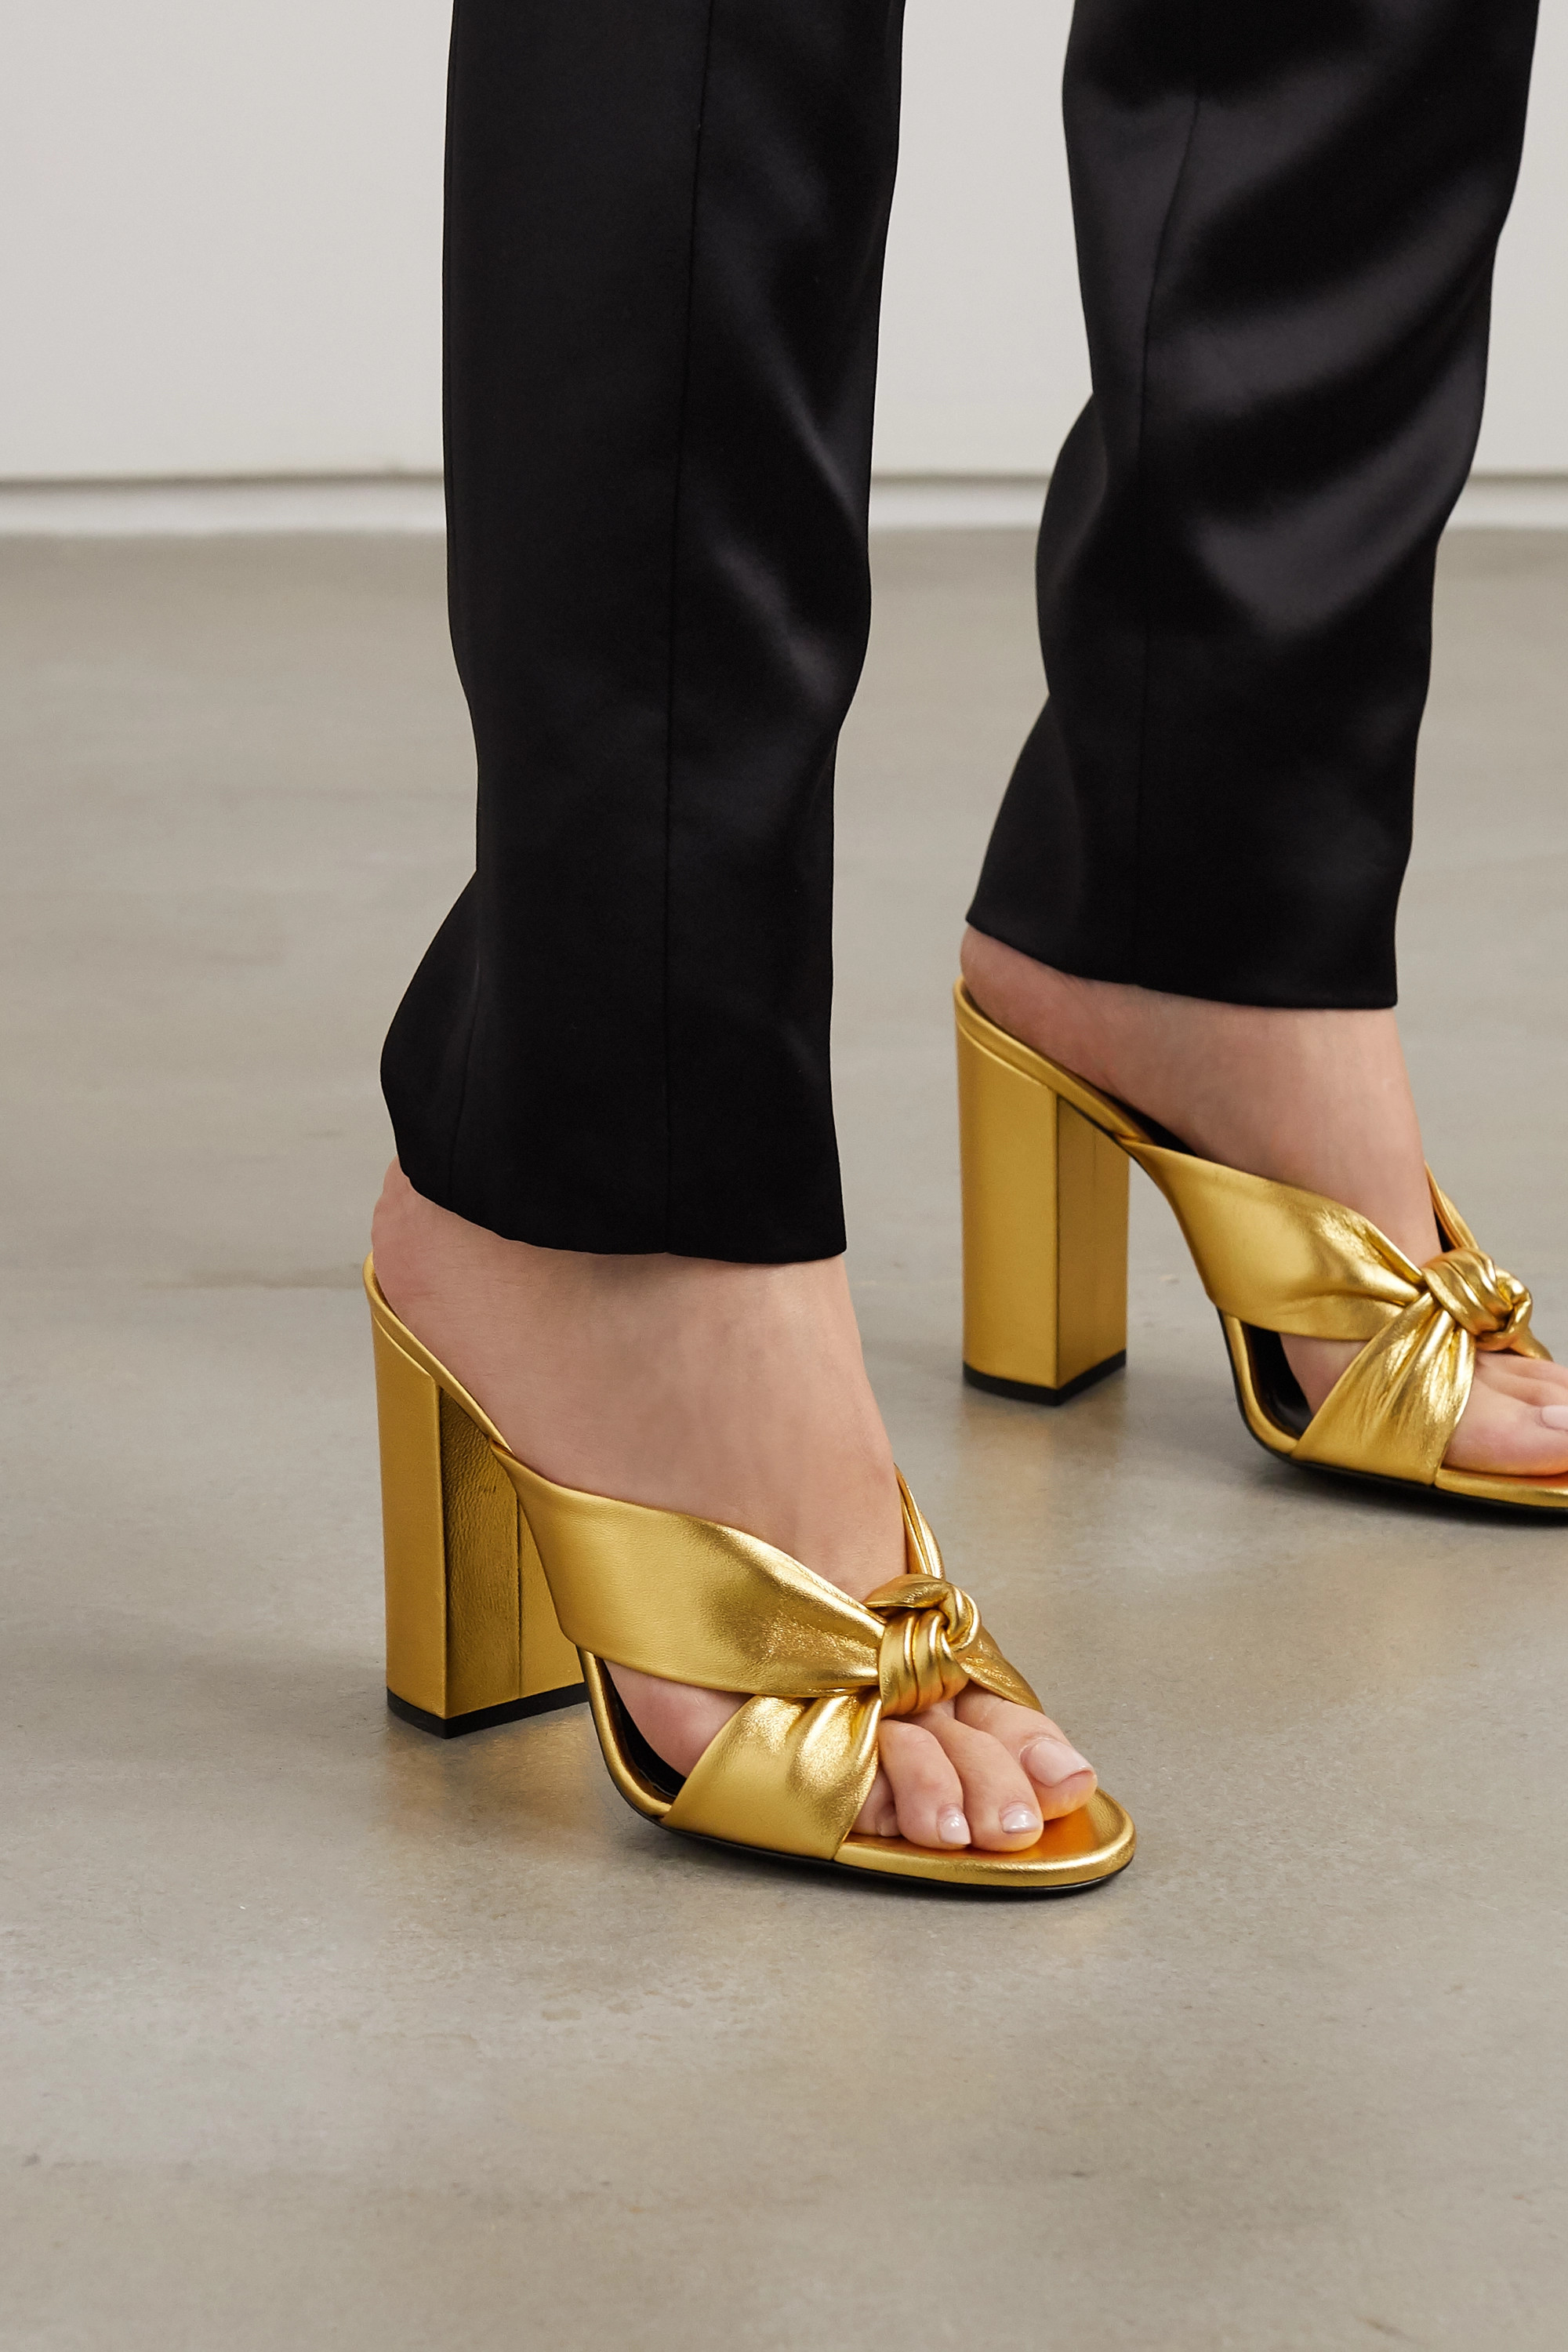 SAINT LAURENT Bianca knotted metallic leather sandals